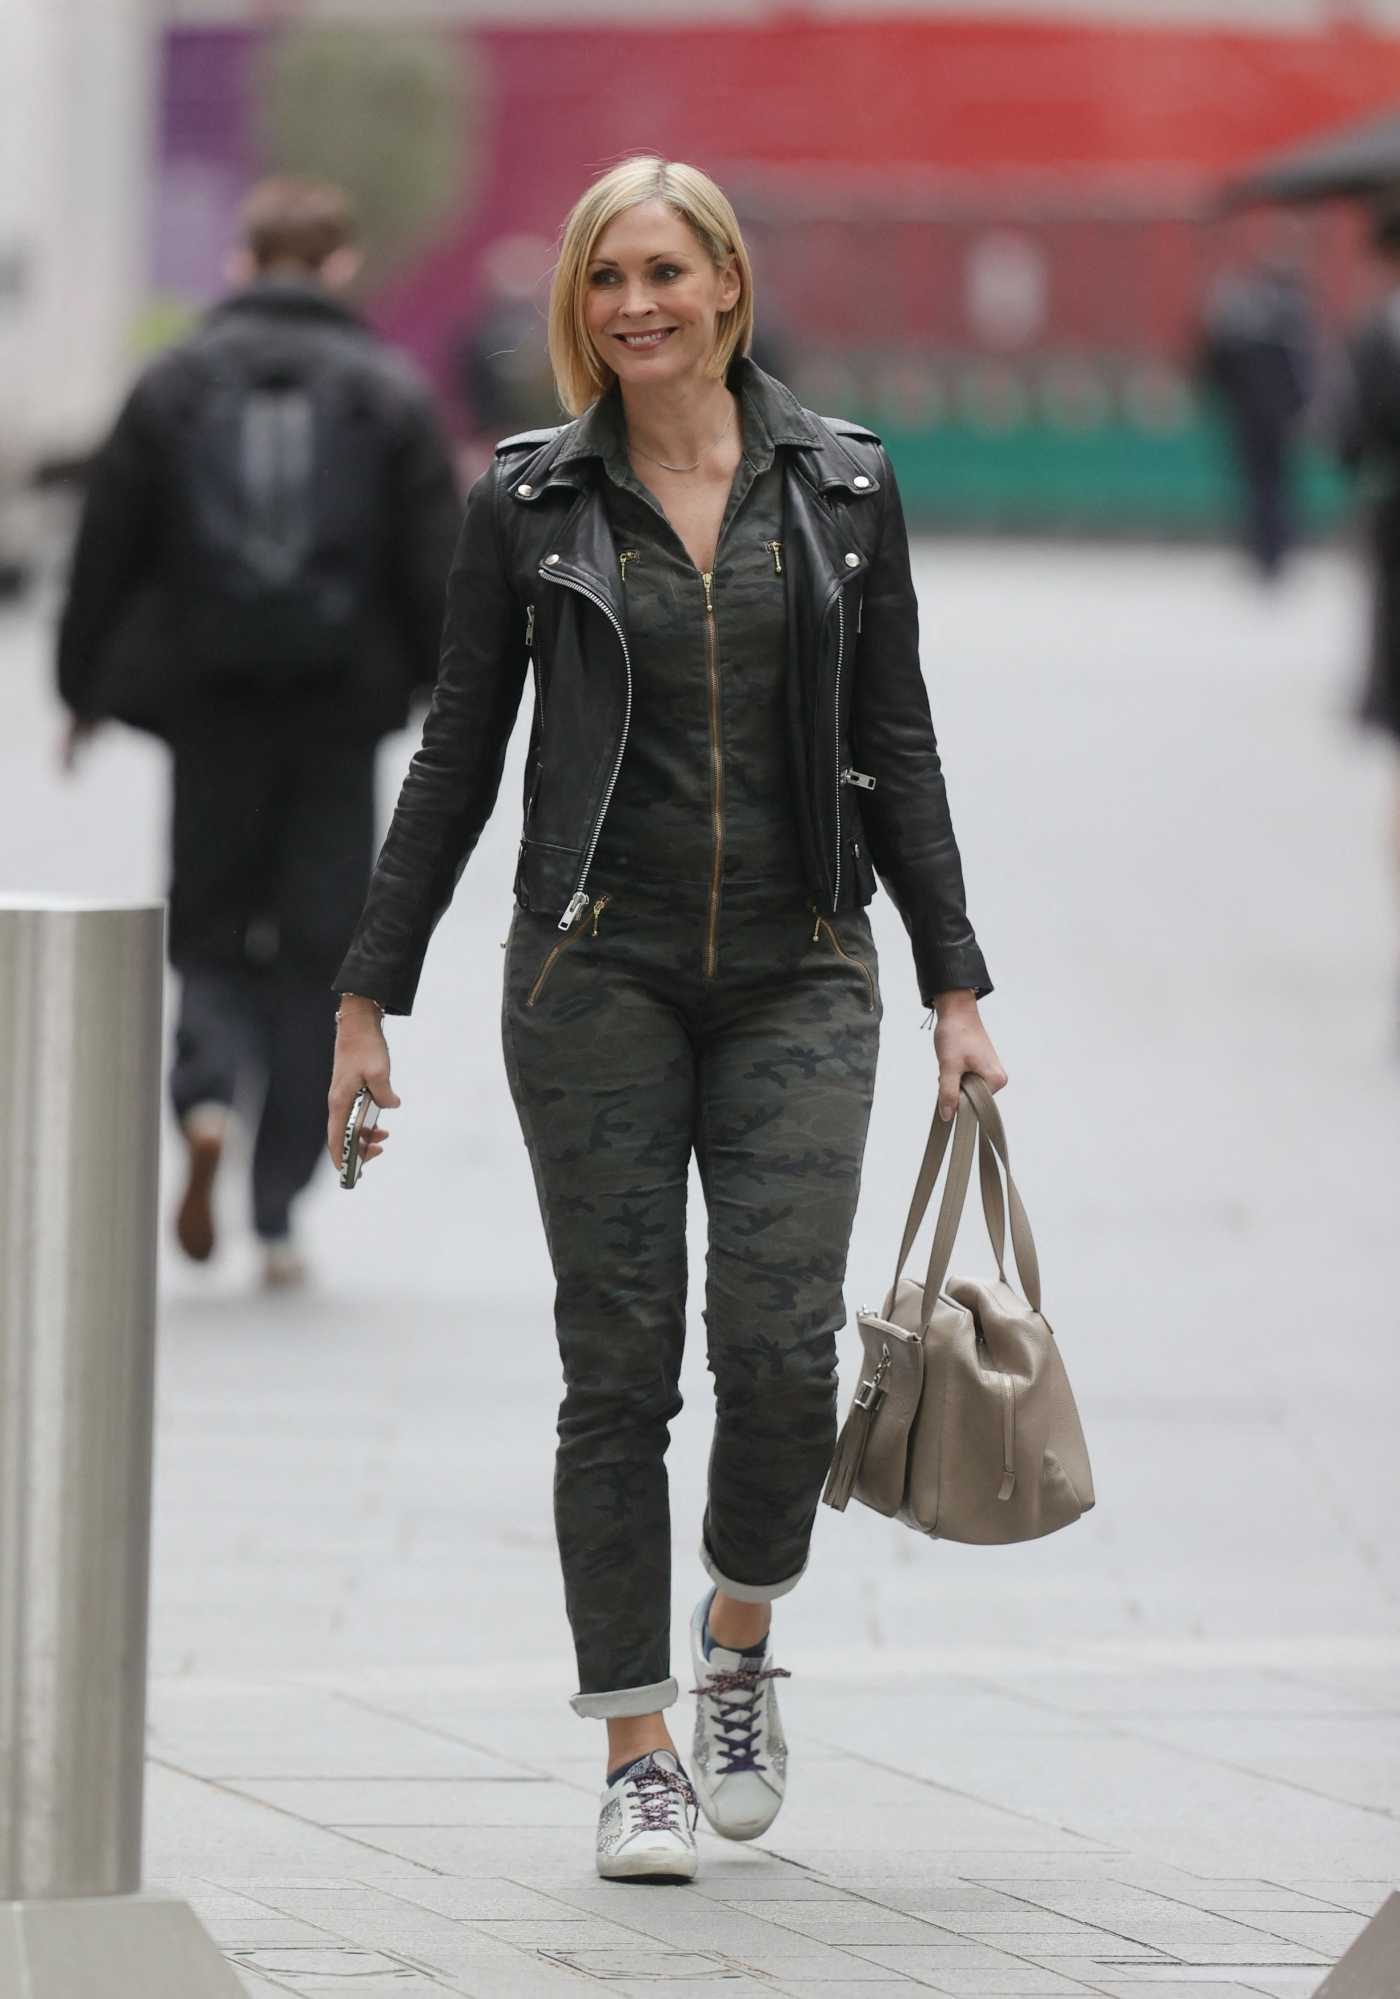 Jenni Falconer in a Black Leather Jacket Arrives at the Smooth Radio in London 05/21/2021